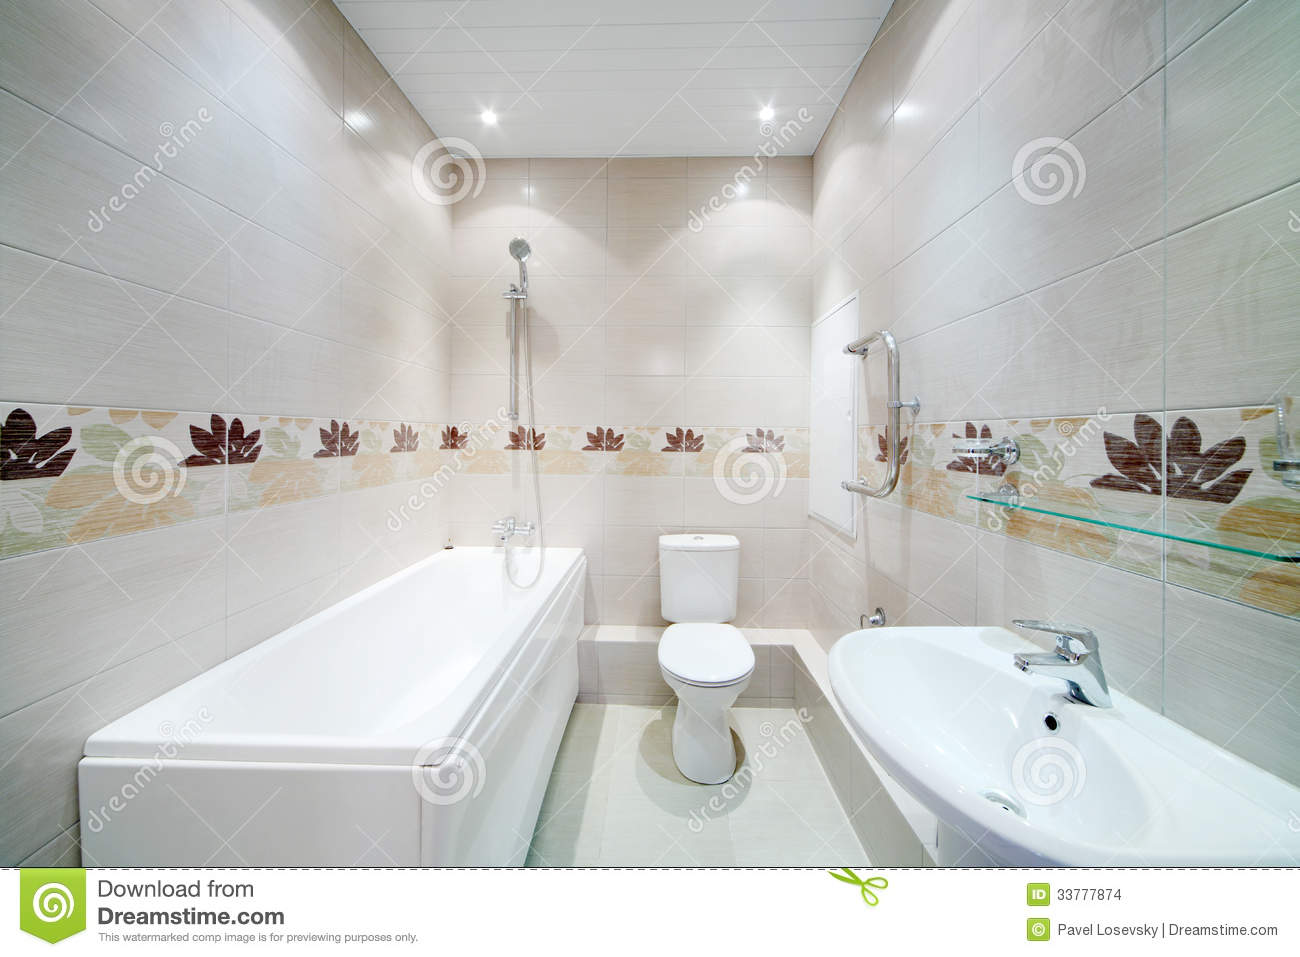 Clean Bathroom With Toilet With Simple Grey Tiles Stock